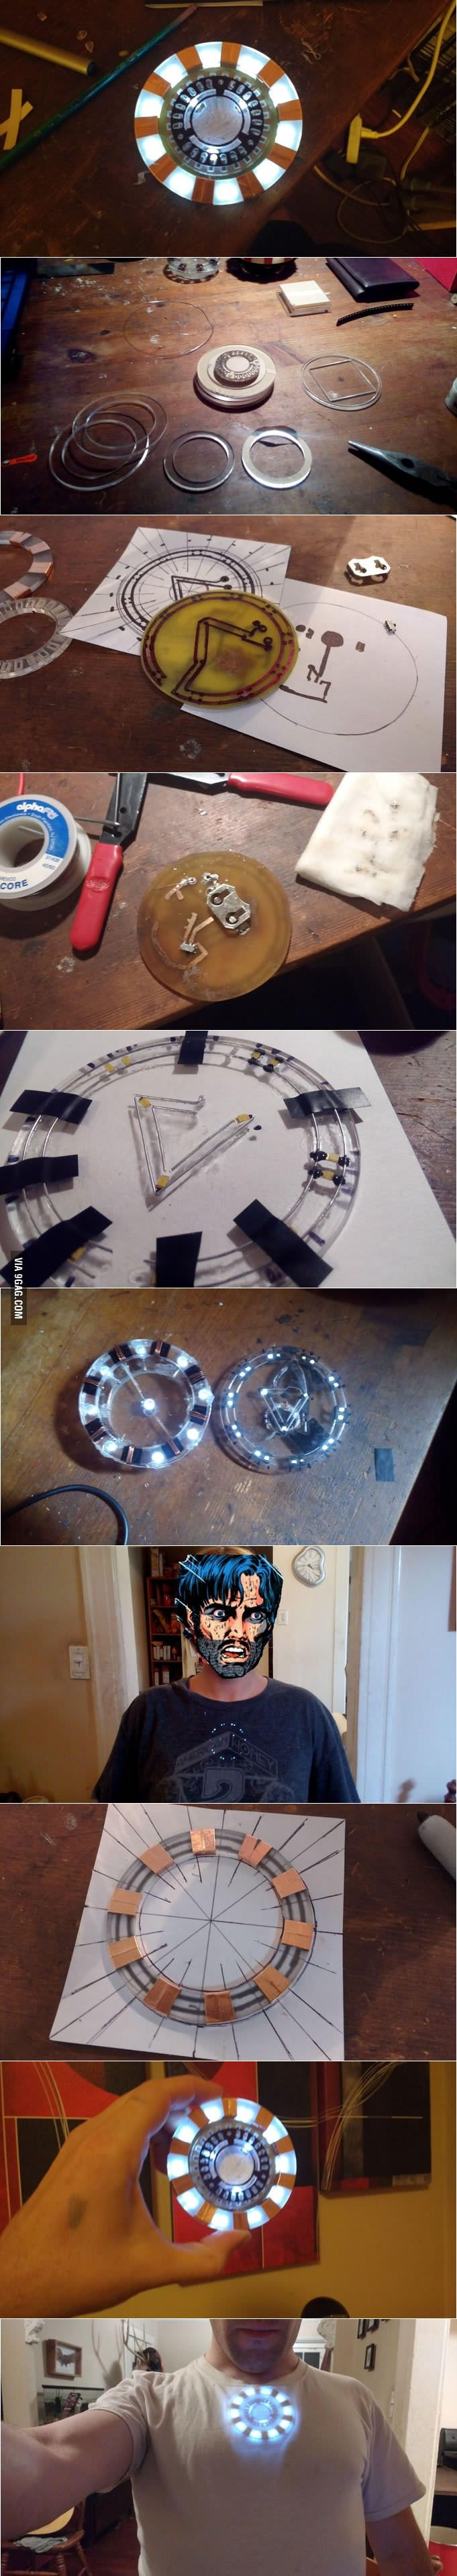 Wearable prosthetic arc reactor for Iron Man/Tony Stark cosplay (Andrew Gross)